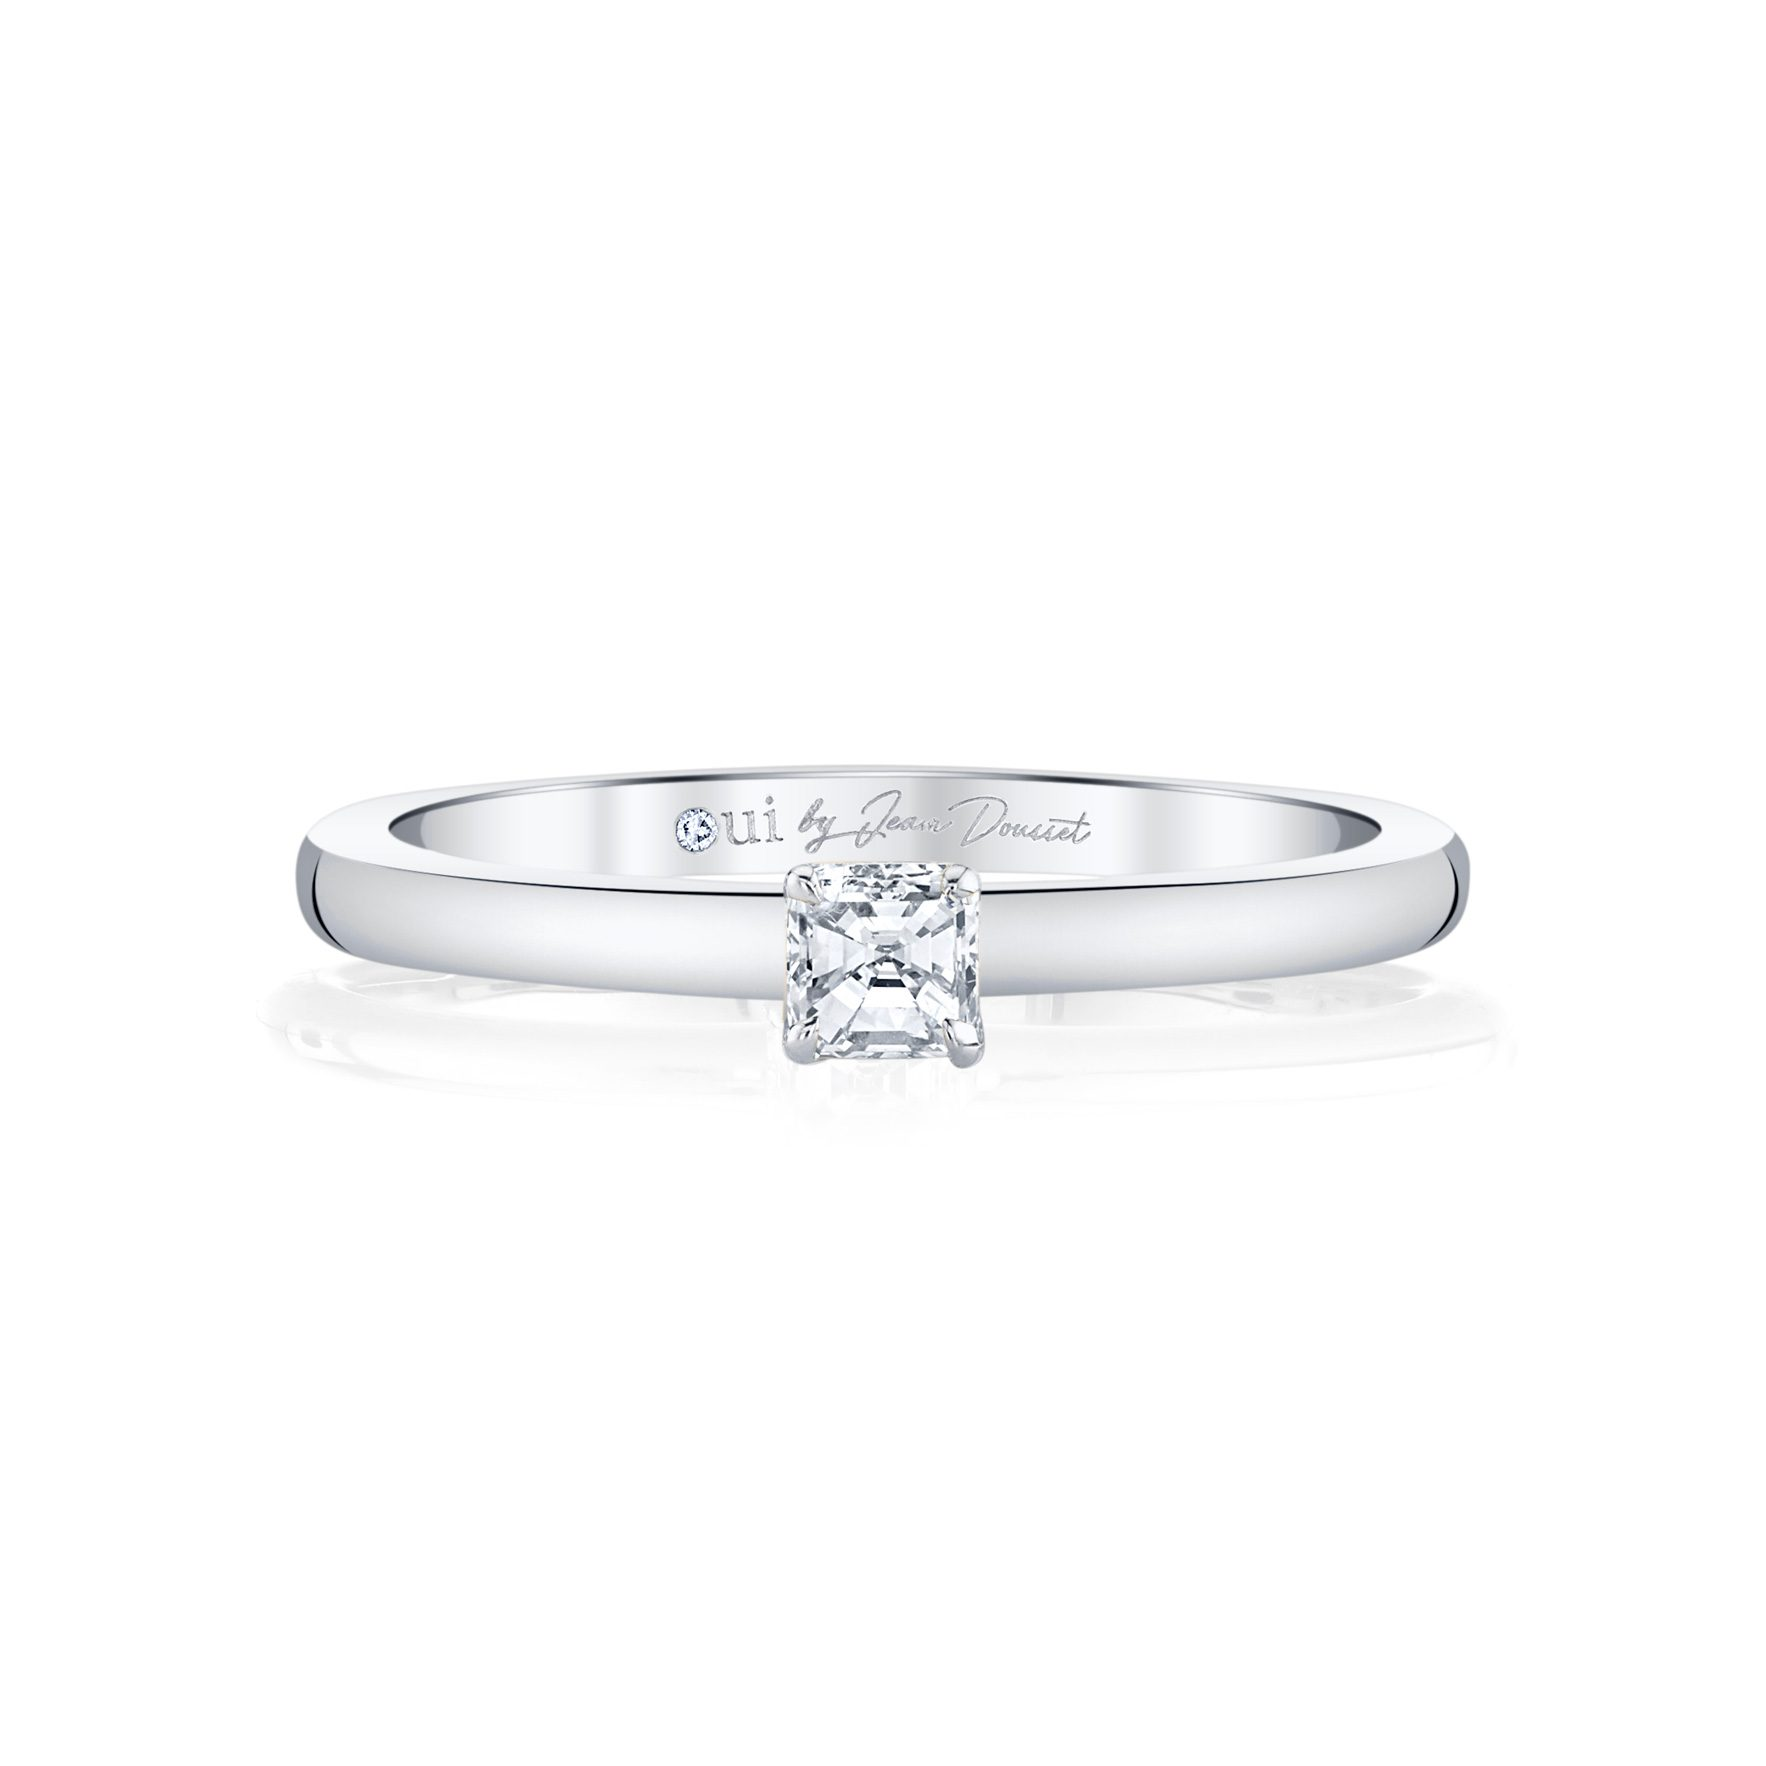 La Petite Asscher Diamond Wedding Band in 18k White Gold Front View by Oui by Jean Dousset